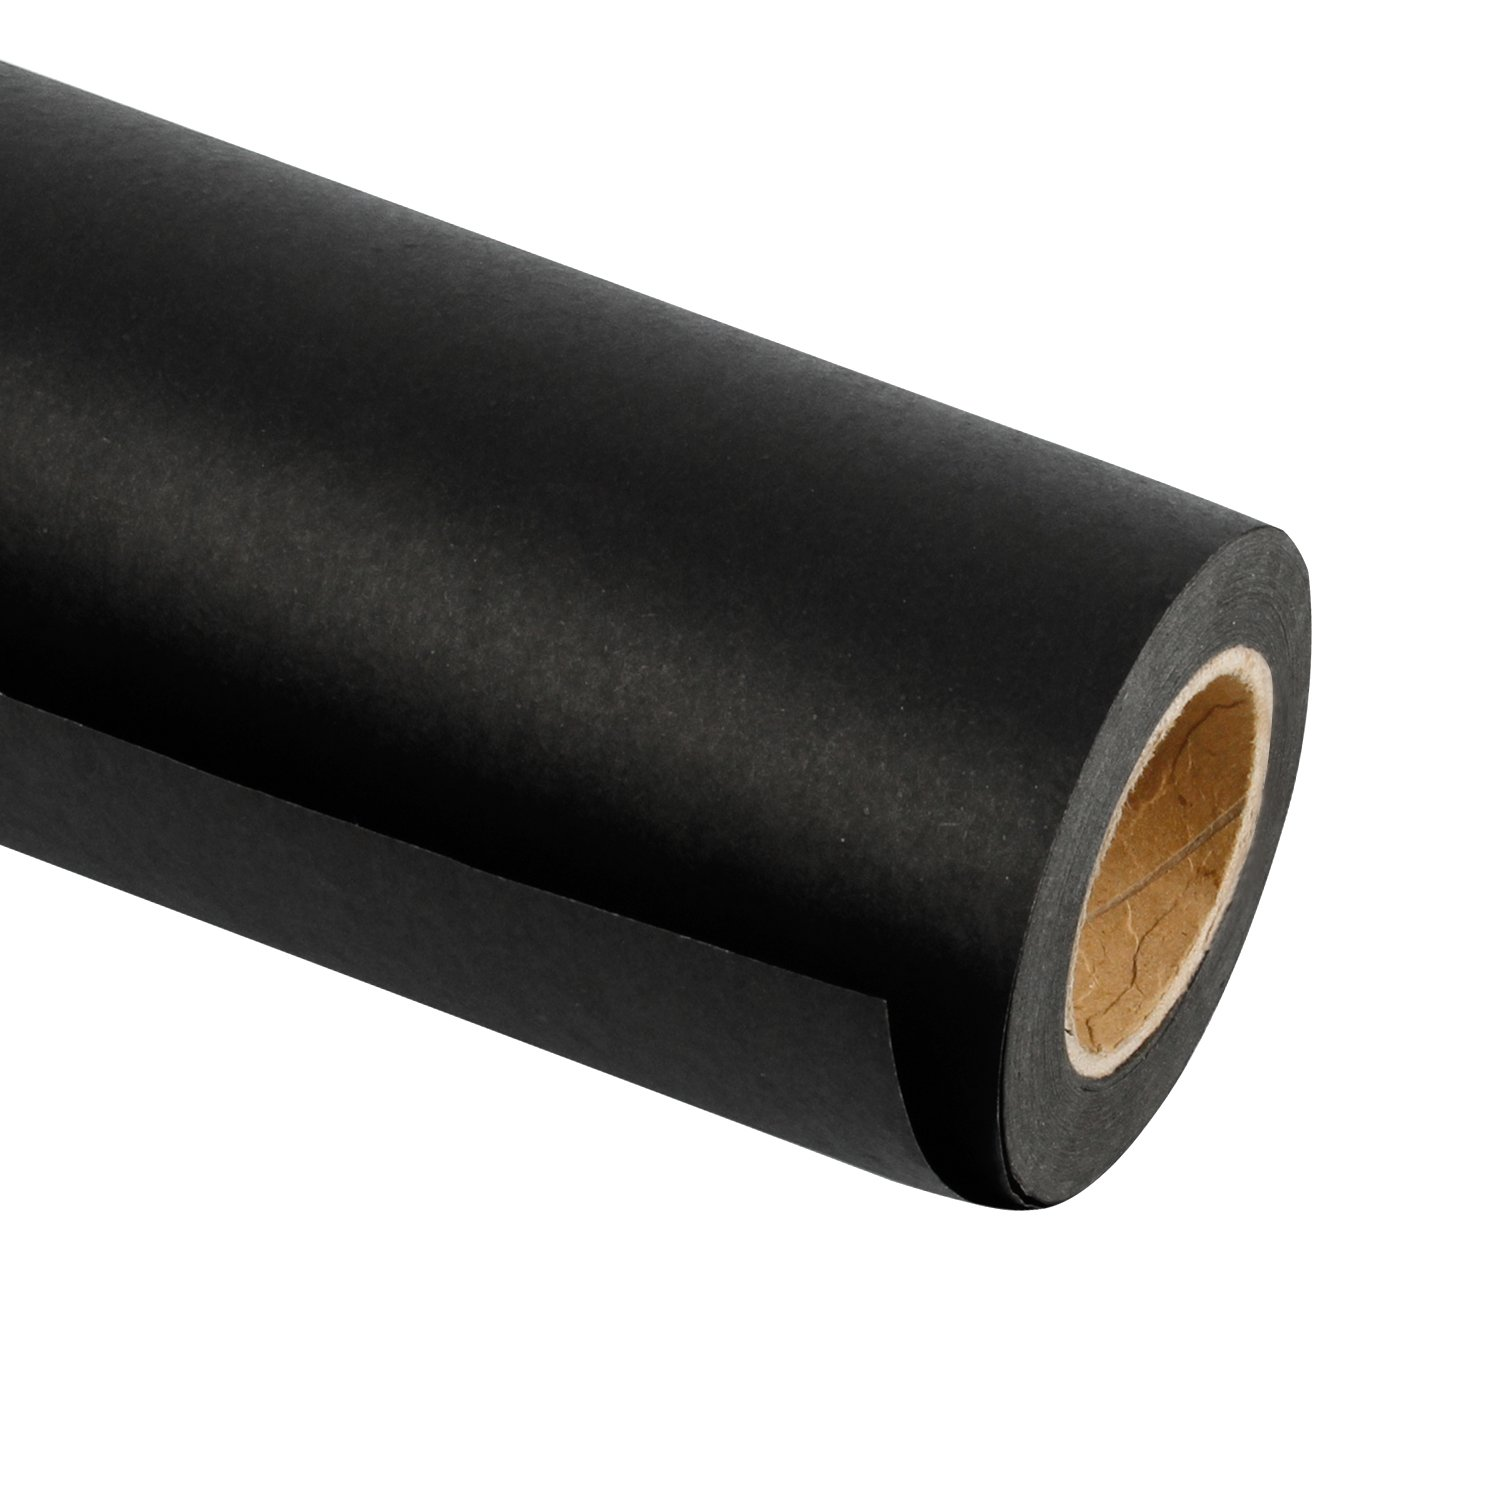 RUSPEPA Black Kraft Paper Roll - 24 inch x 100 Feet - Recycled Paper Perfect for for Crafts, Art, Gift Wrapping, Packing, Postal, Shipping, Dunnage & Parcel by RUSPEPA